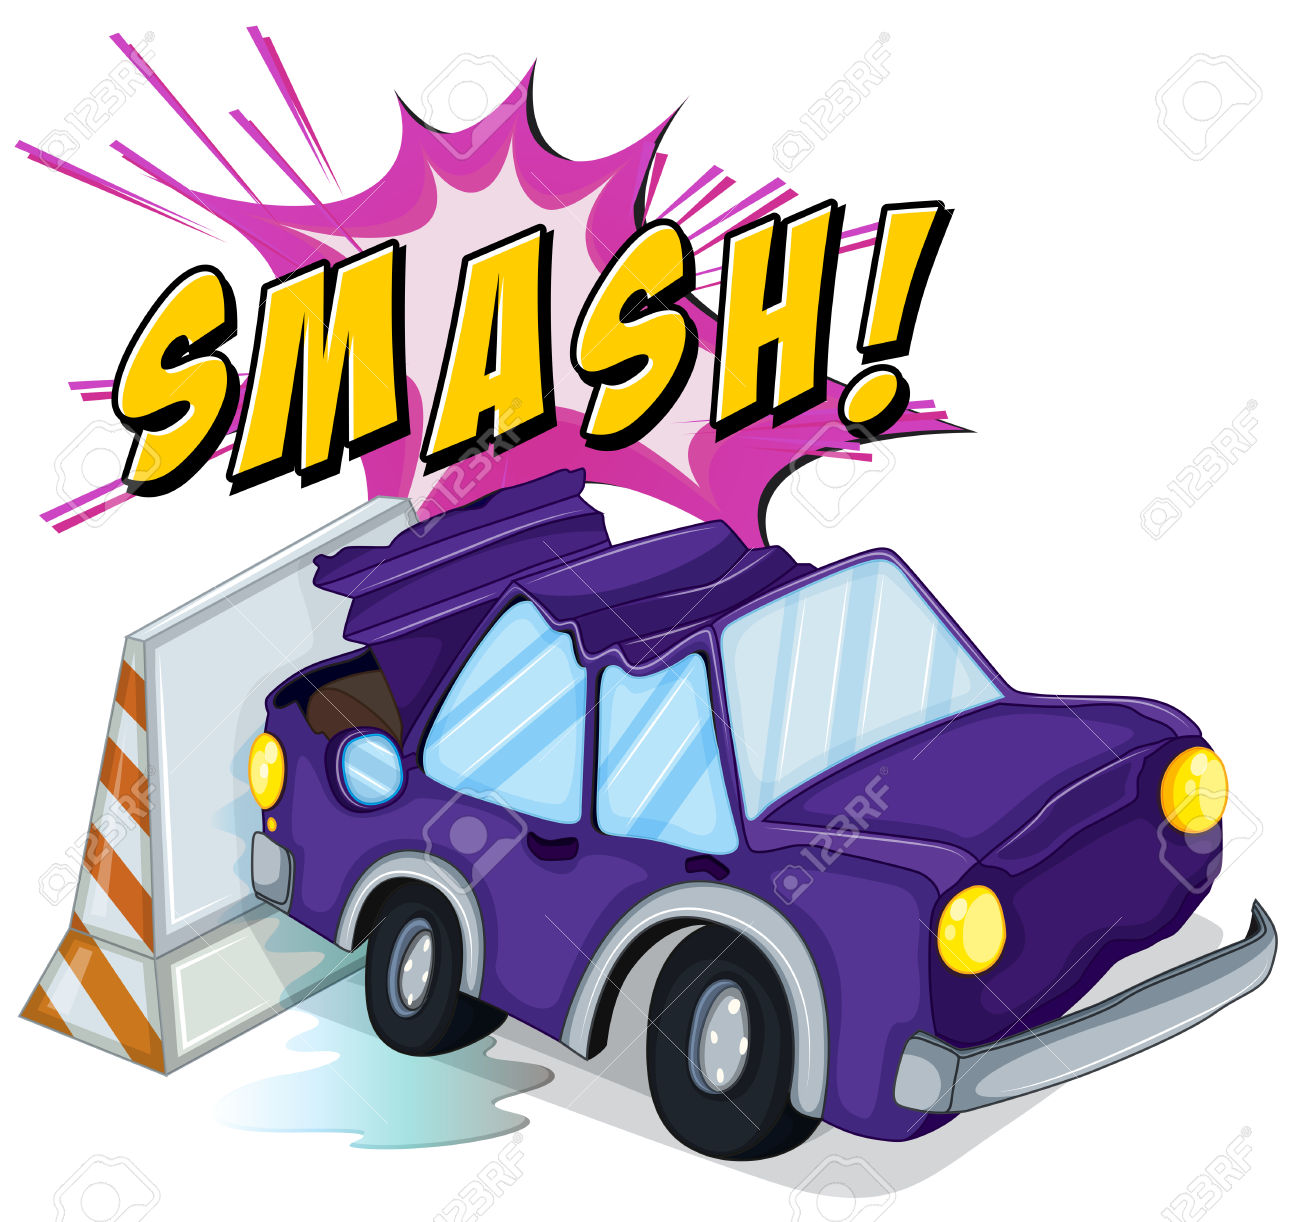 Crashed car into wall clipart.